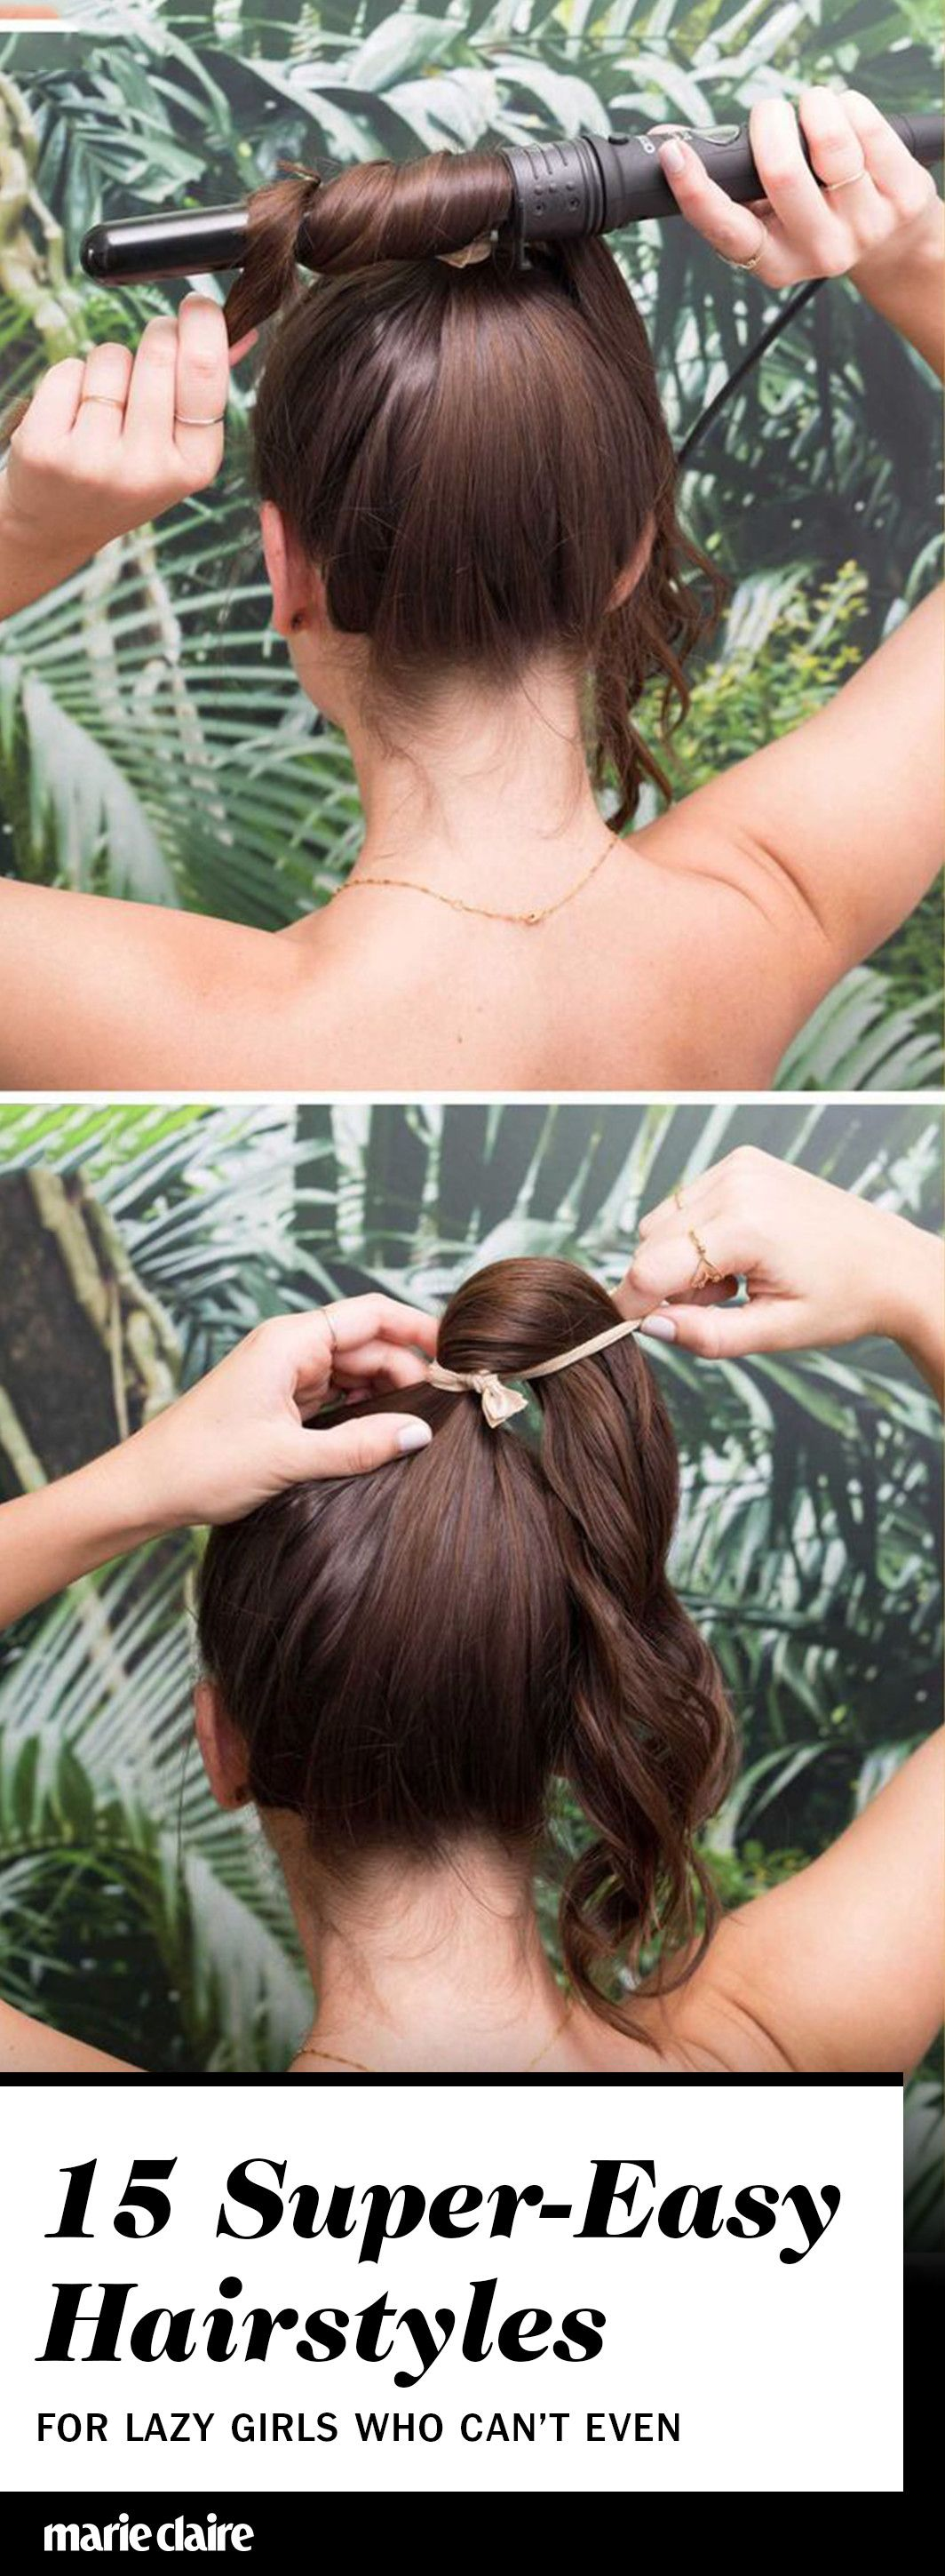 supereasy hairstyles for lazy girls who canut even chic